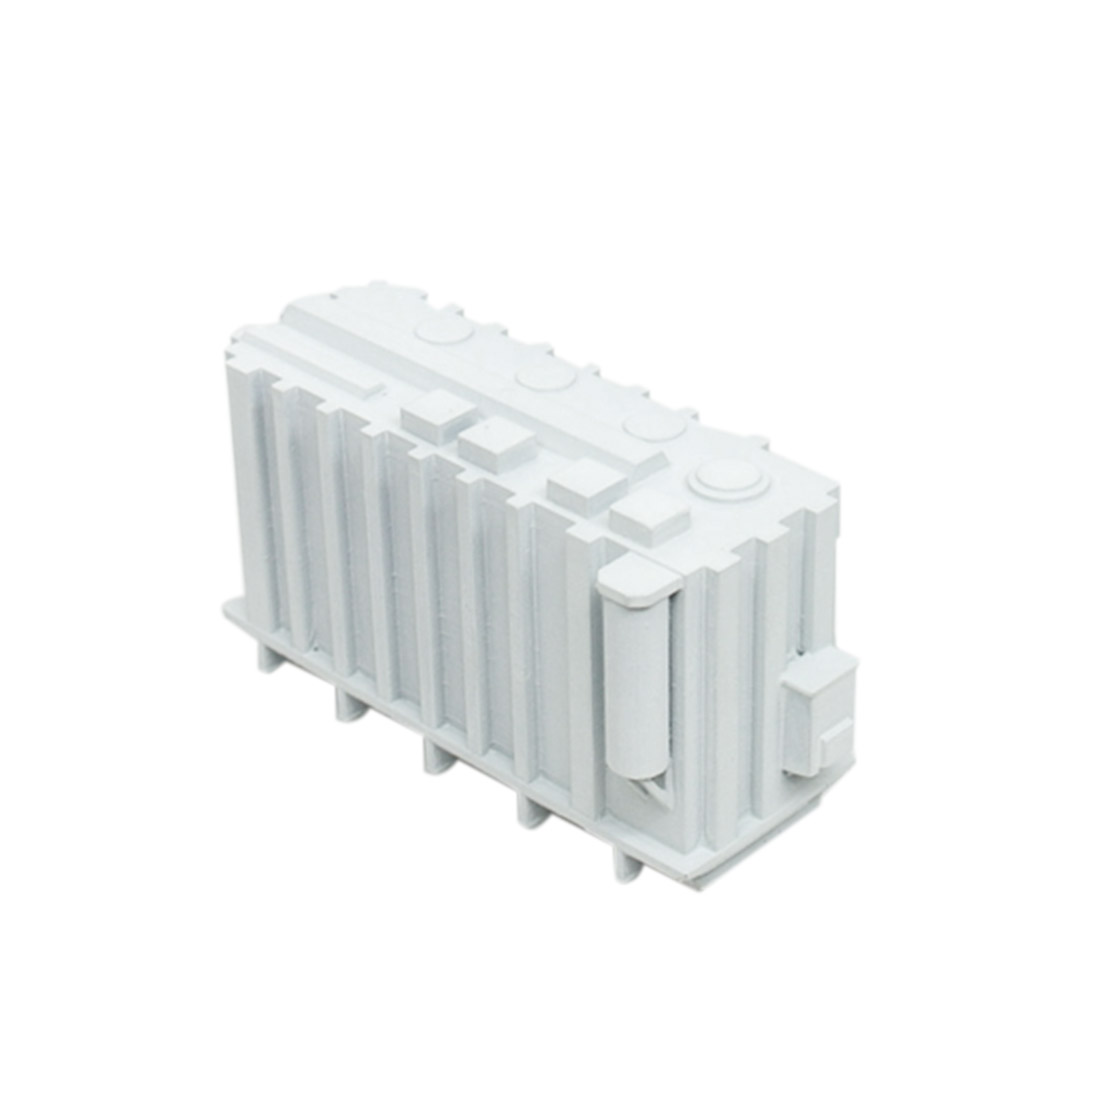 1:87 HO Scale <font><b>Resin</b></font> Substation Transformer Model for Train Railway Layout Scene Sand Table Model Building Kits image